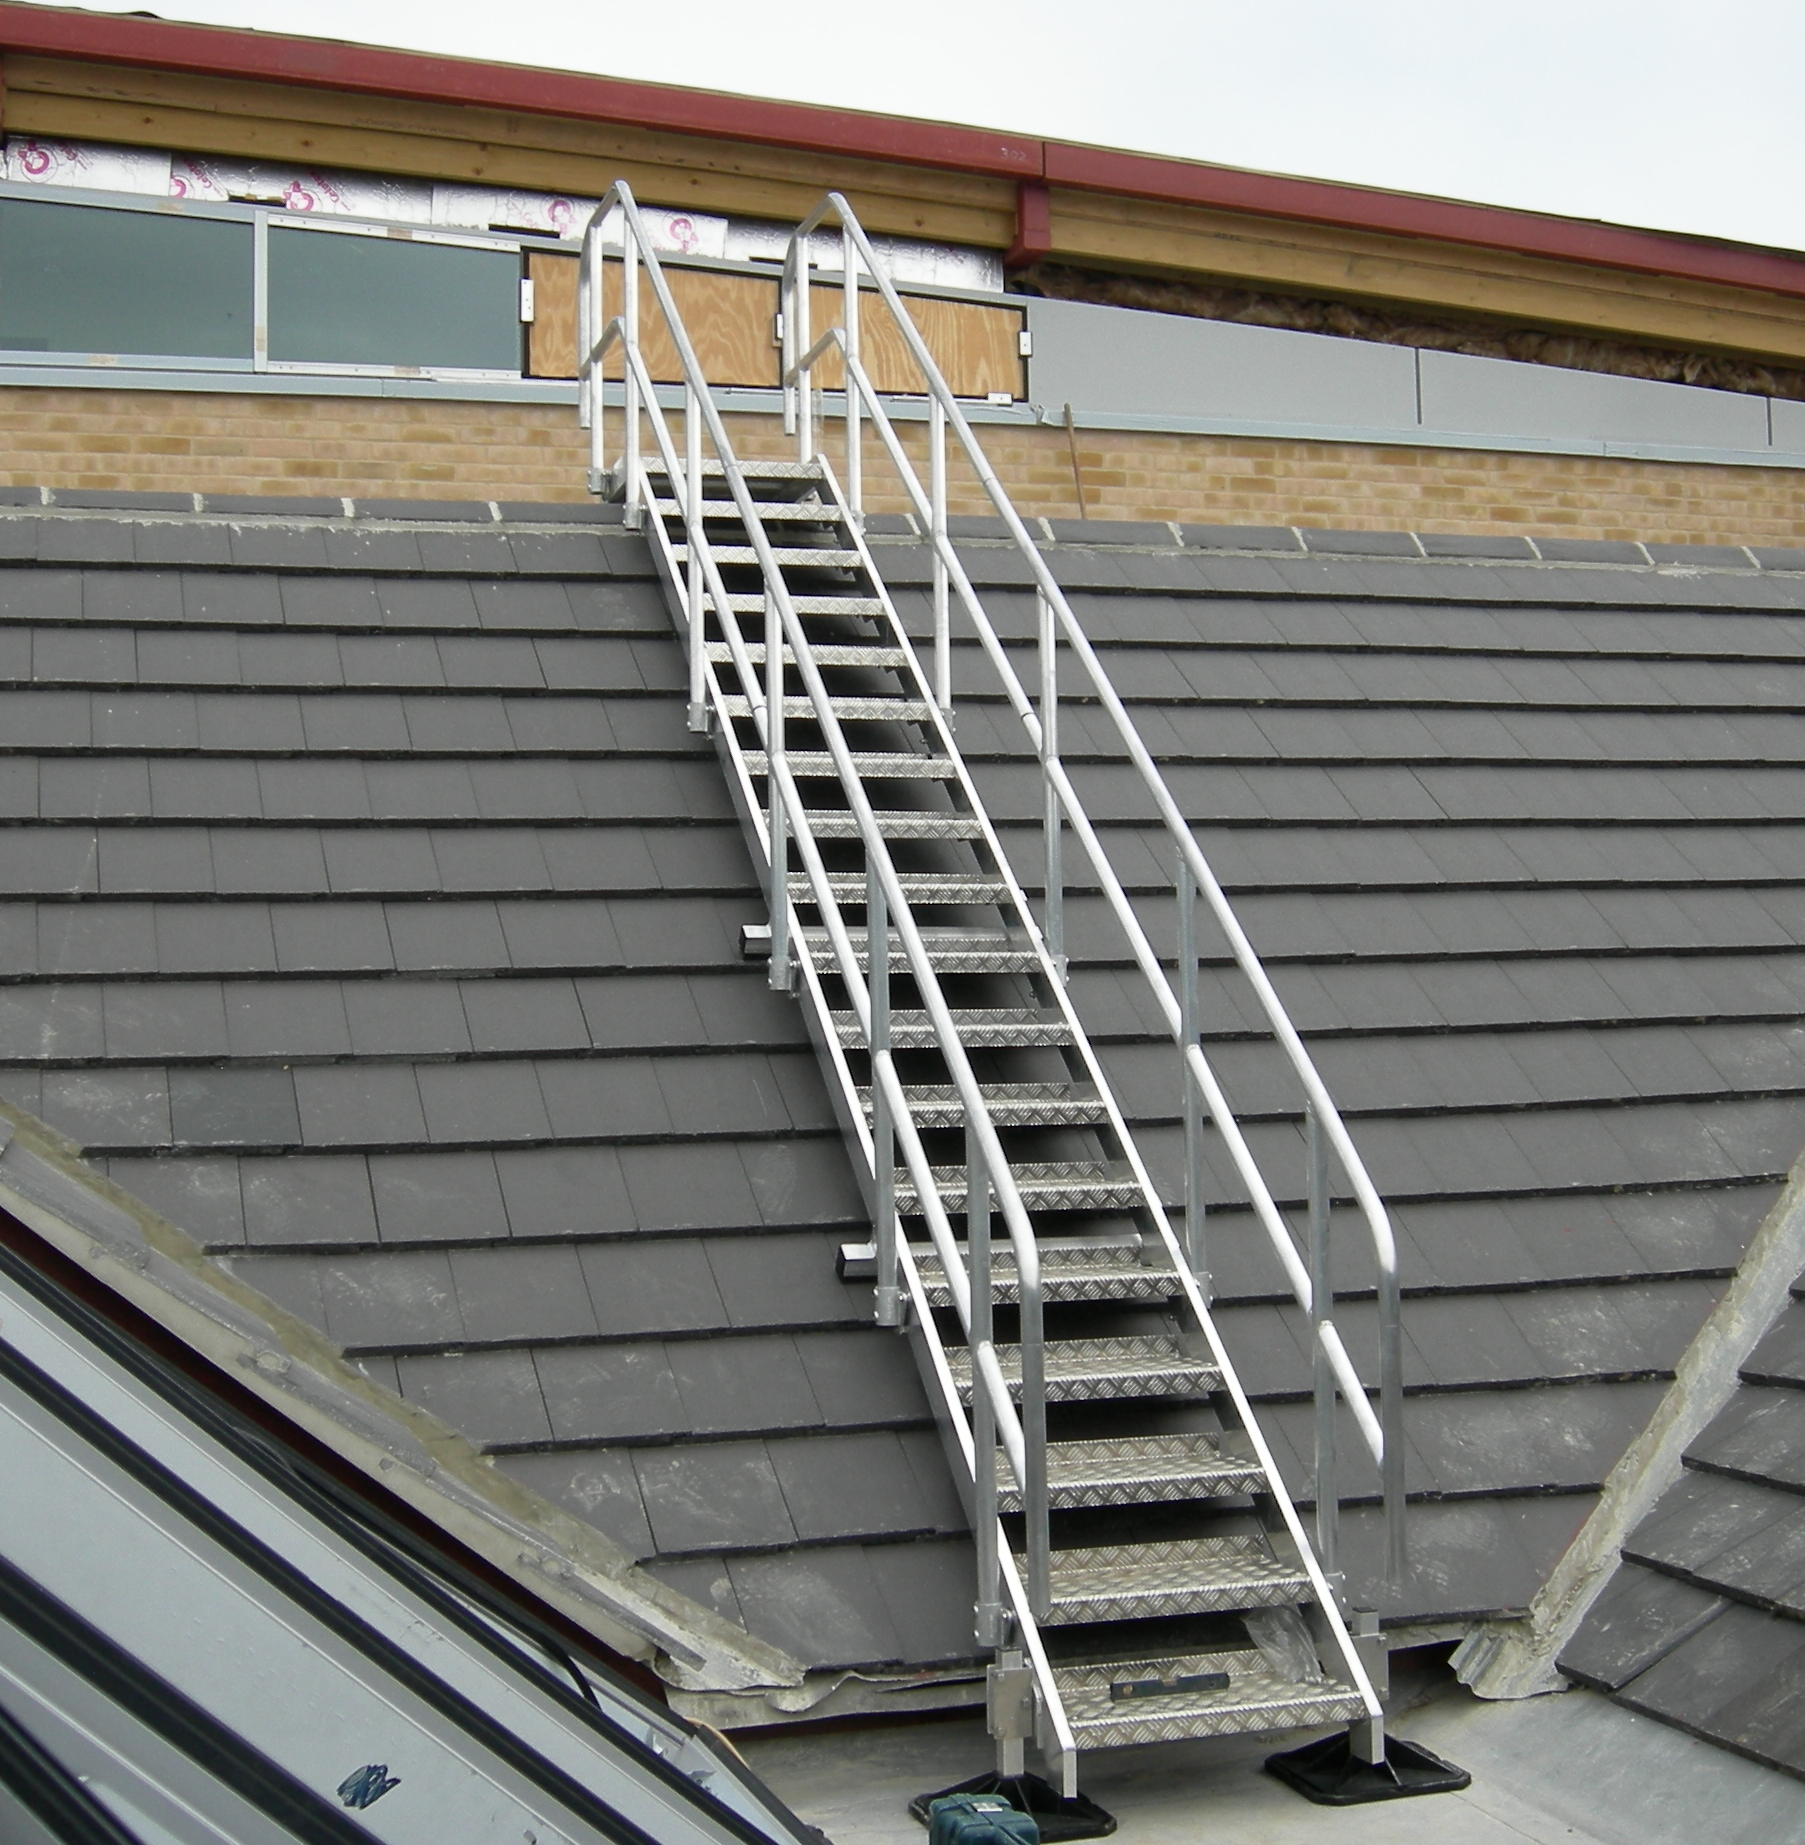 Stairs step overs mcd design supply and for How to roof a house step by step